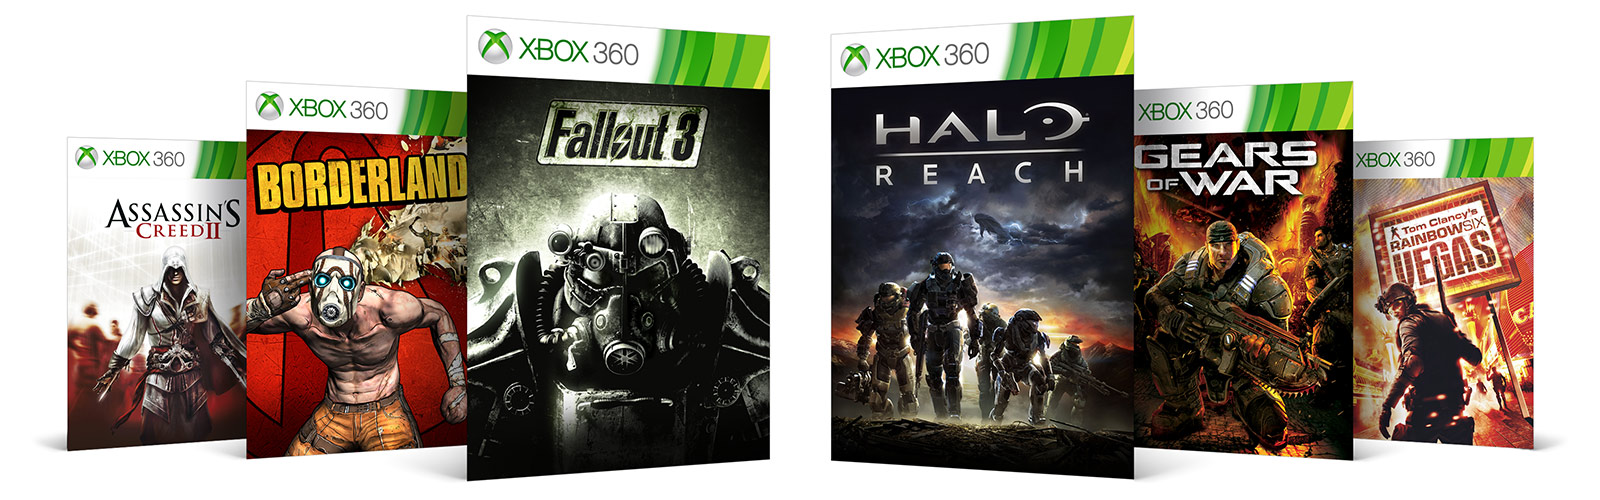 Games available on Xbox 360, including Fallout 3, Halo Reach, and Borderlands